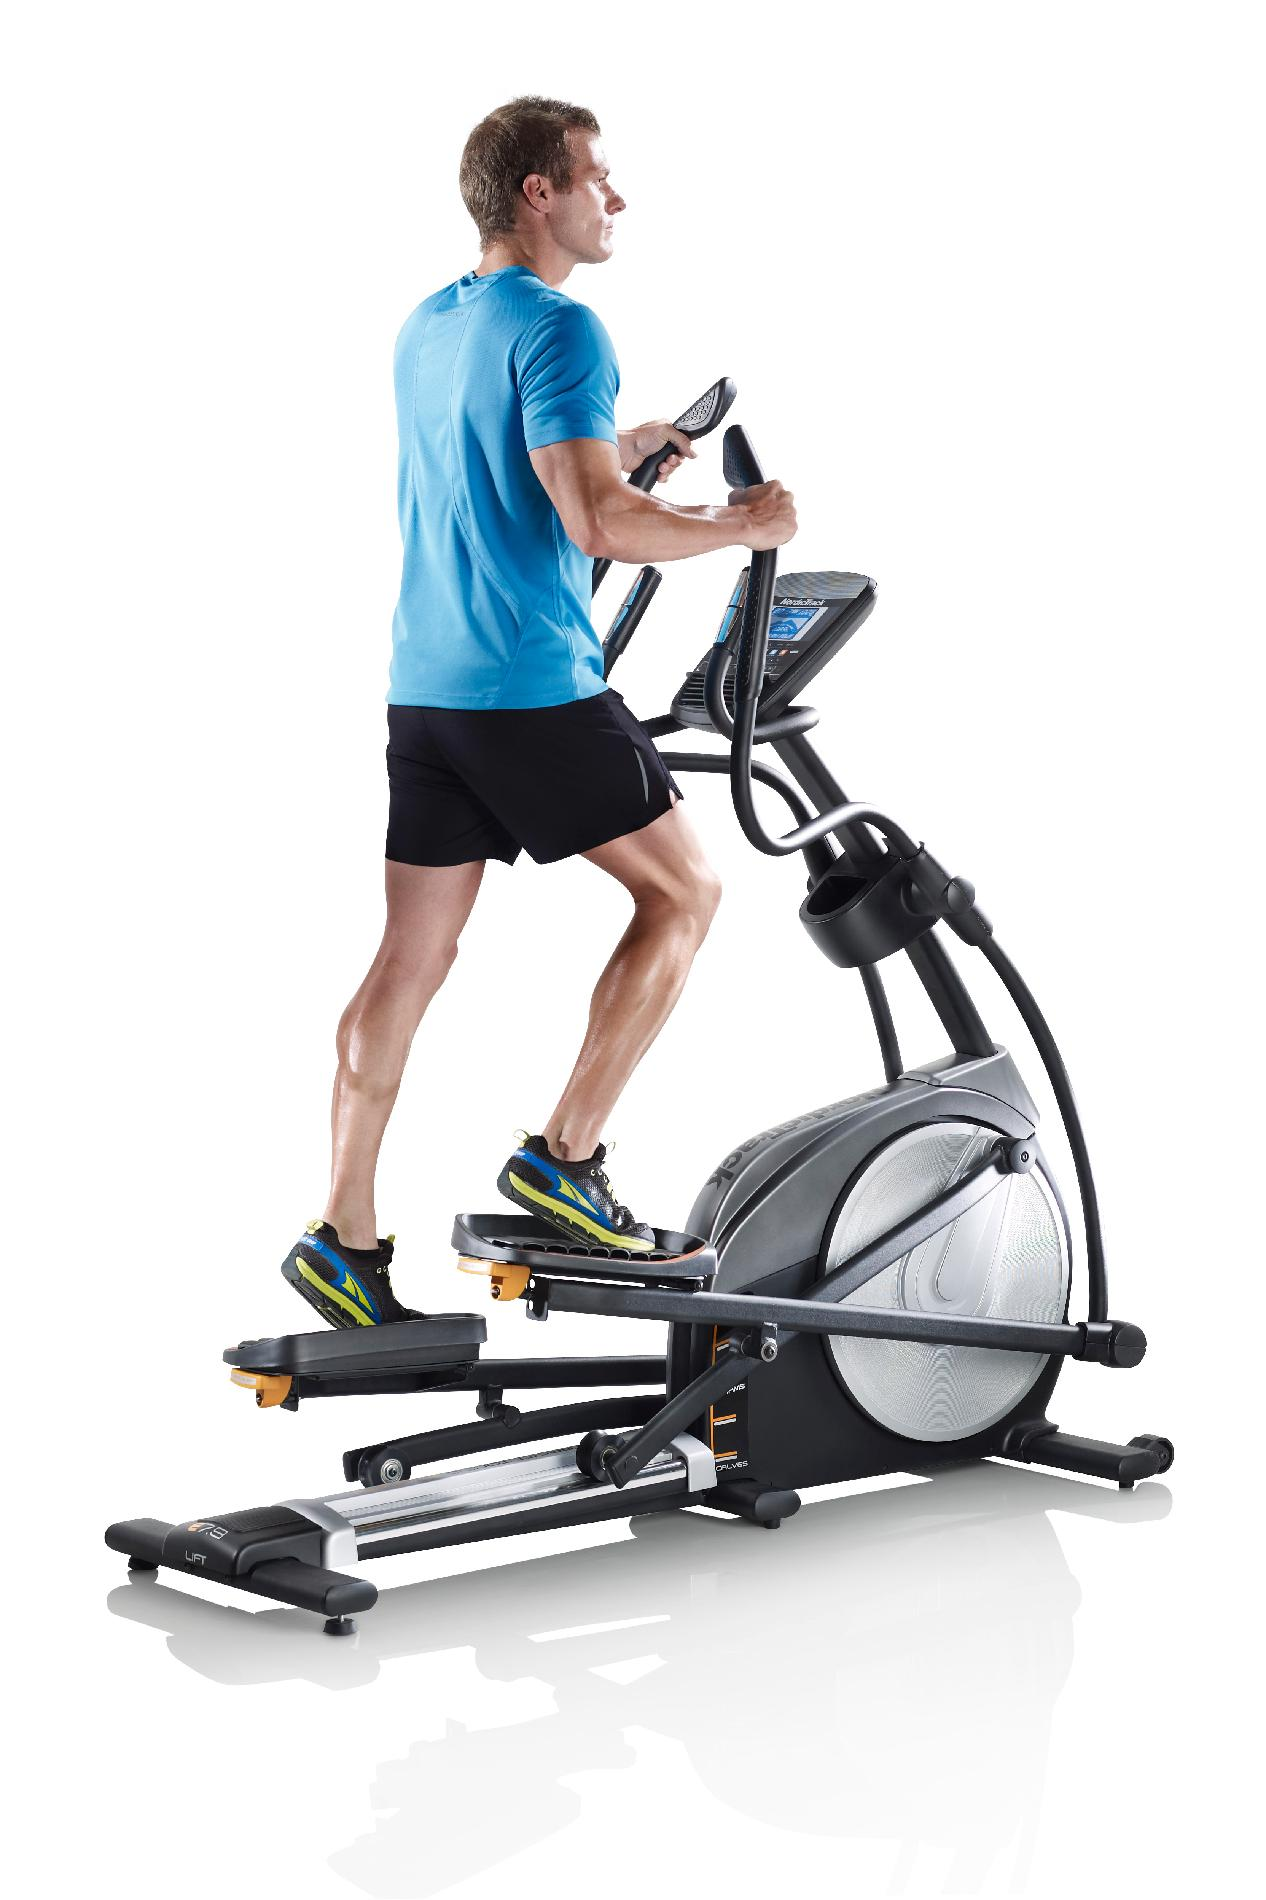 NordicTrack E8.7 Elliptical